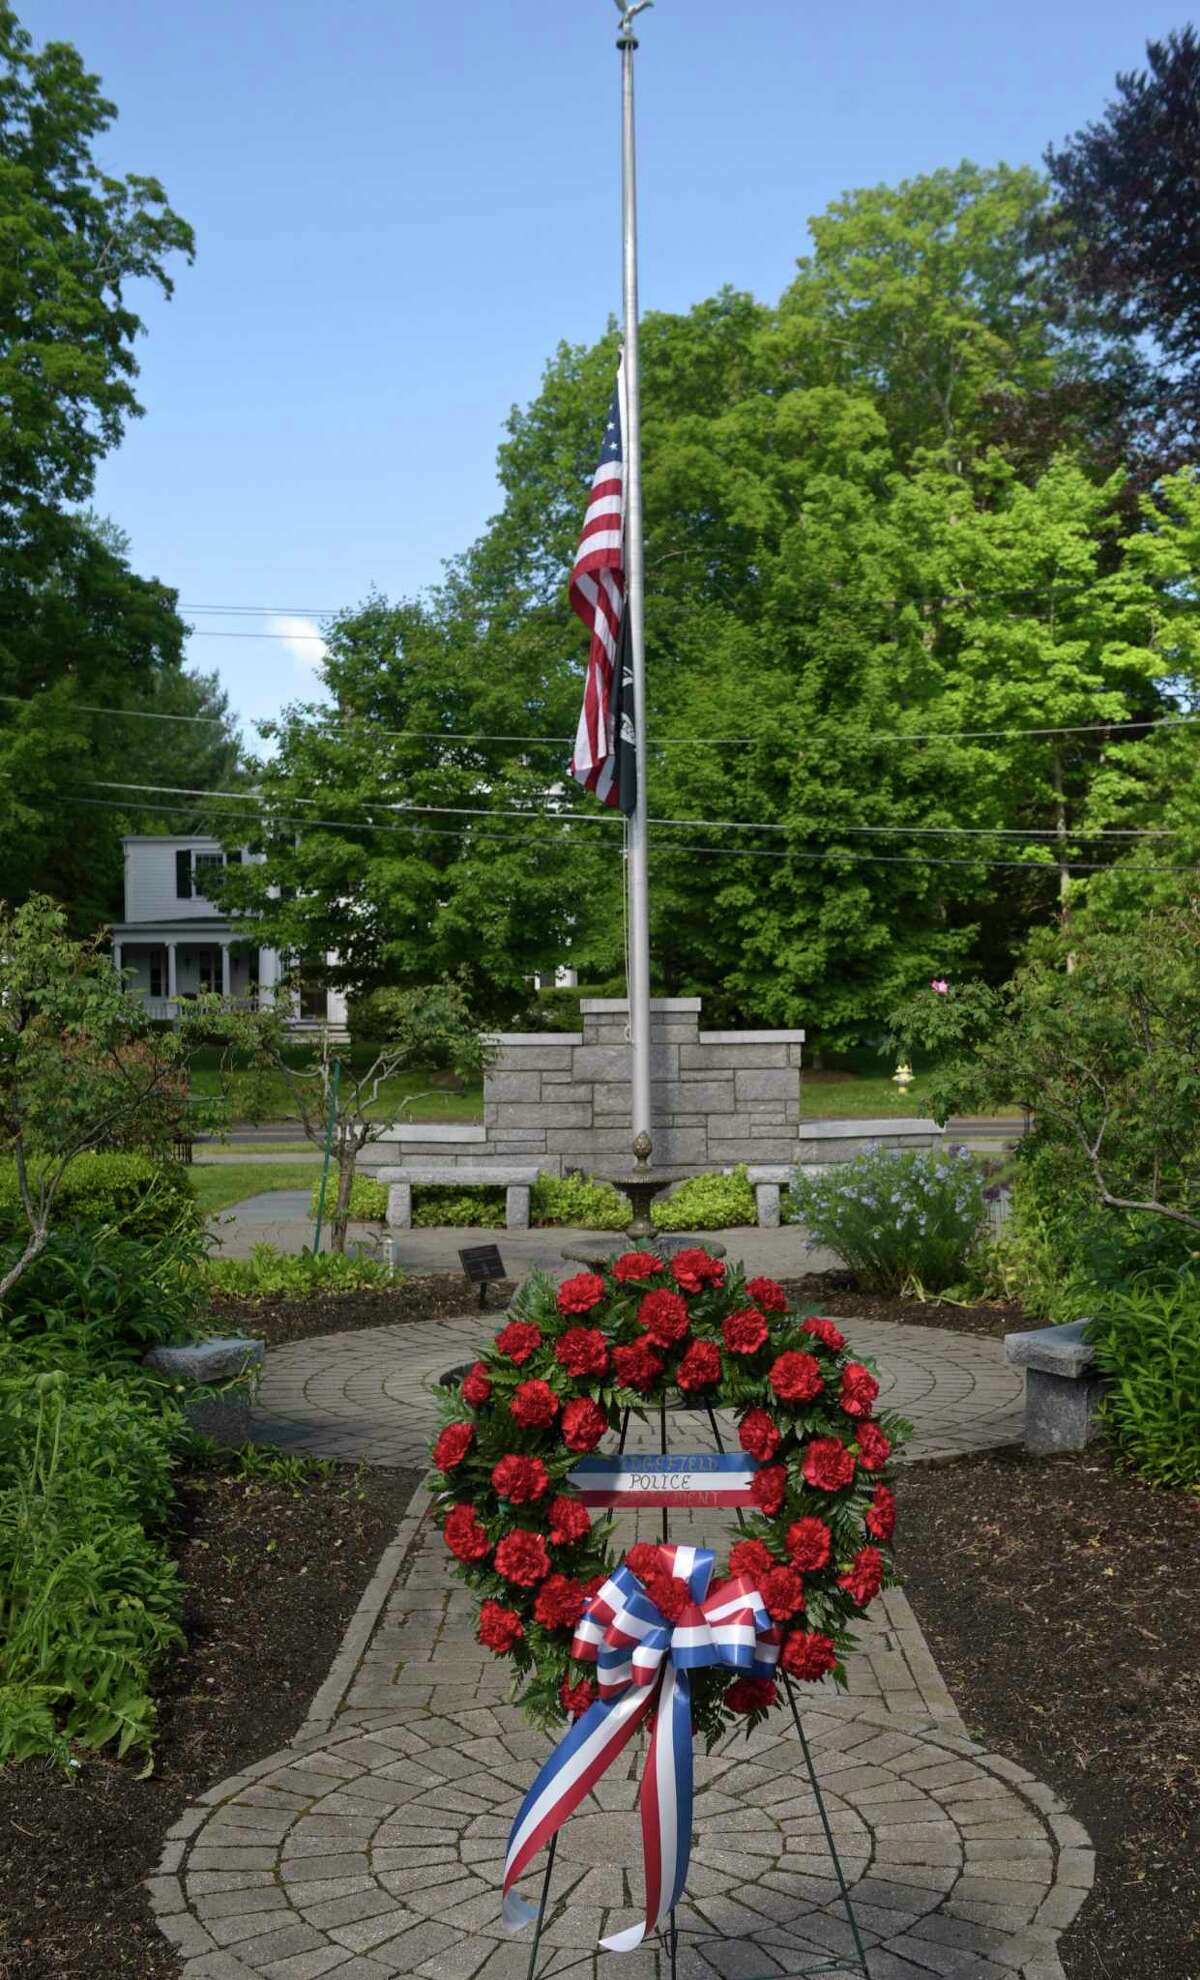 The Ridgefield Police Department held their annual Memorial Ceremony to honor and pay tribute to deceased members of the department. At the Lounsbury House, in Ridgefield, Conn, Thursday, May 27, 2021.